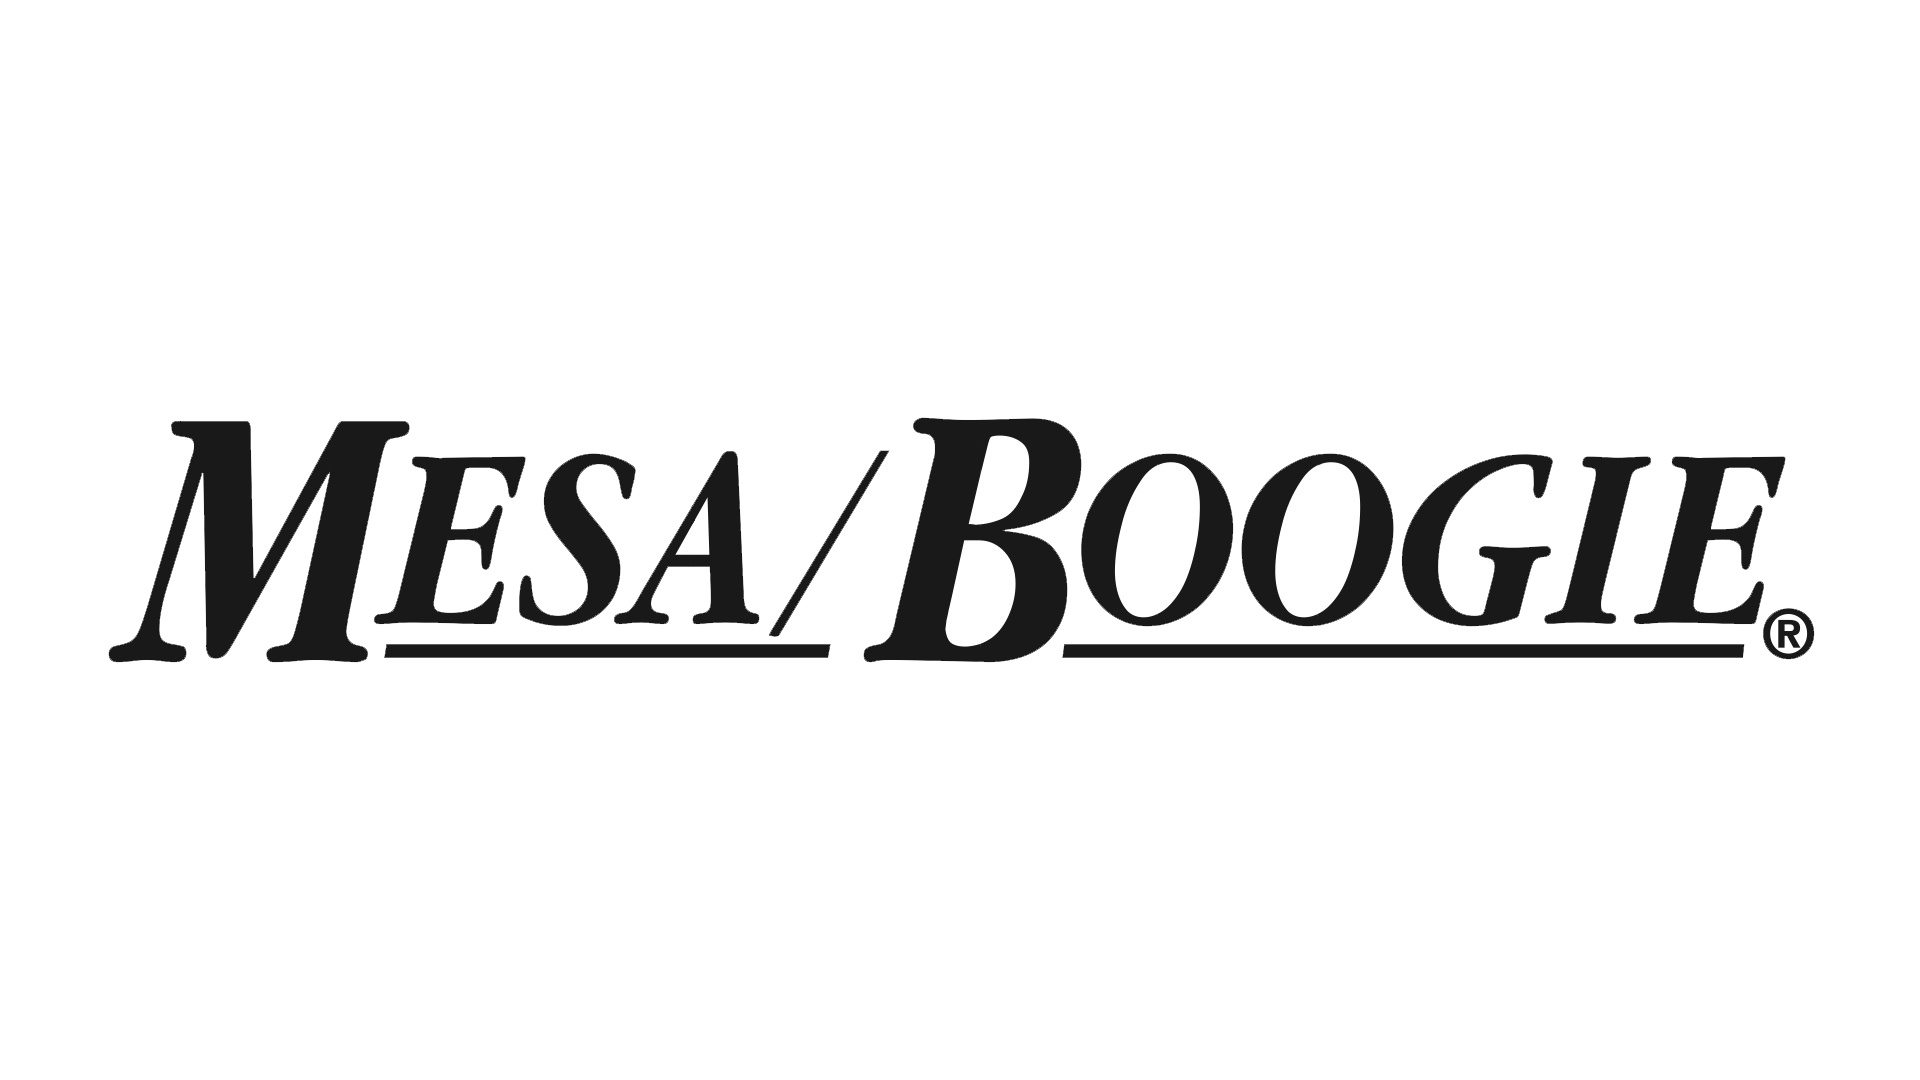 Mesa Boogie 360 Products